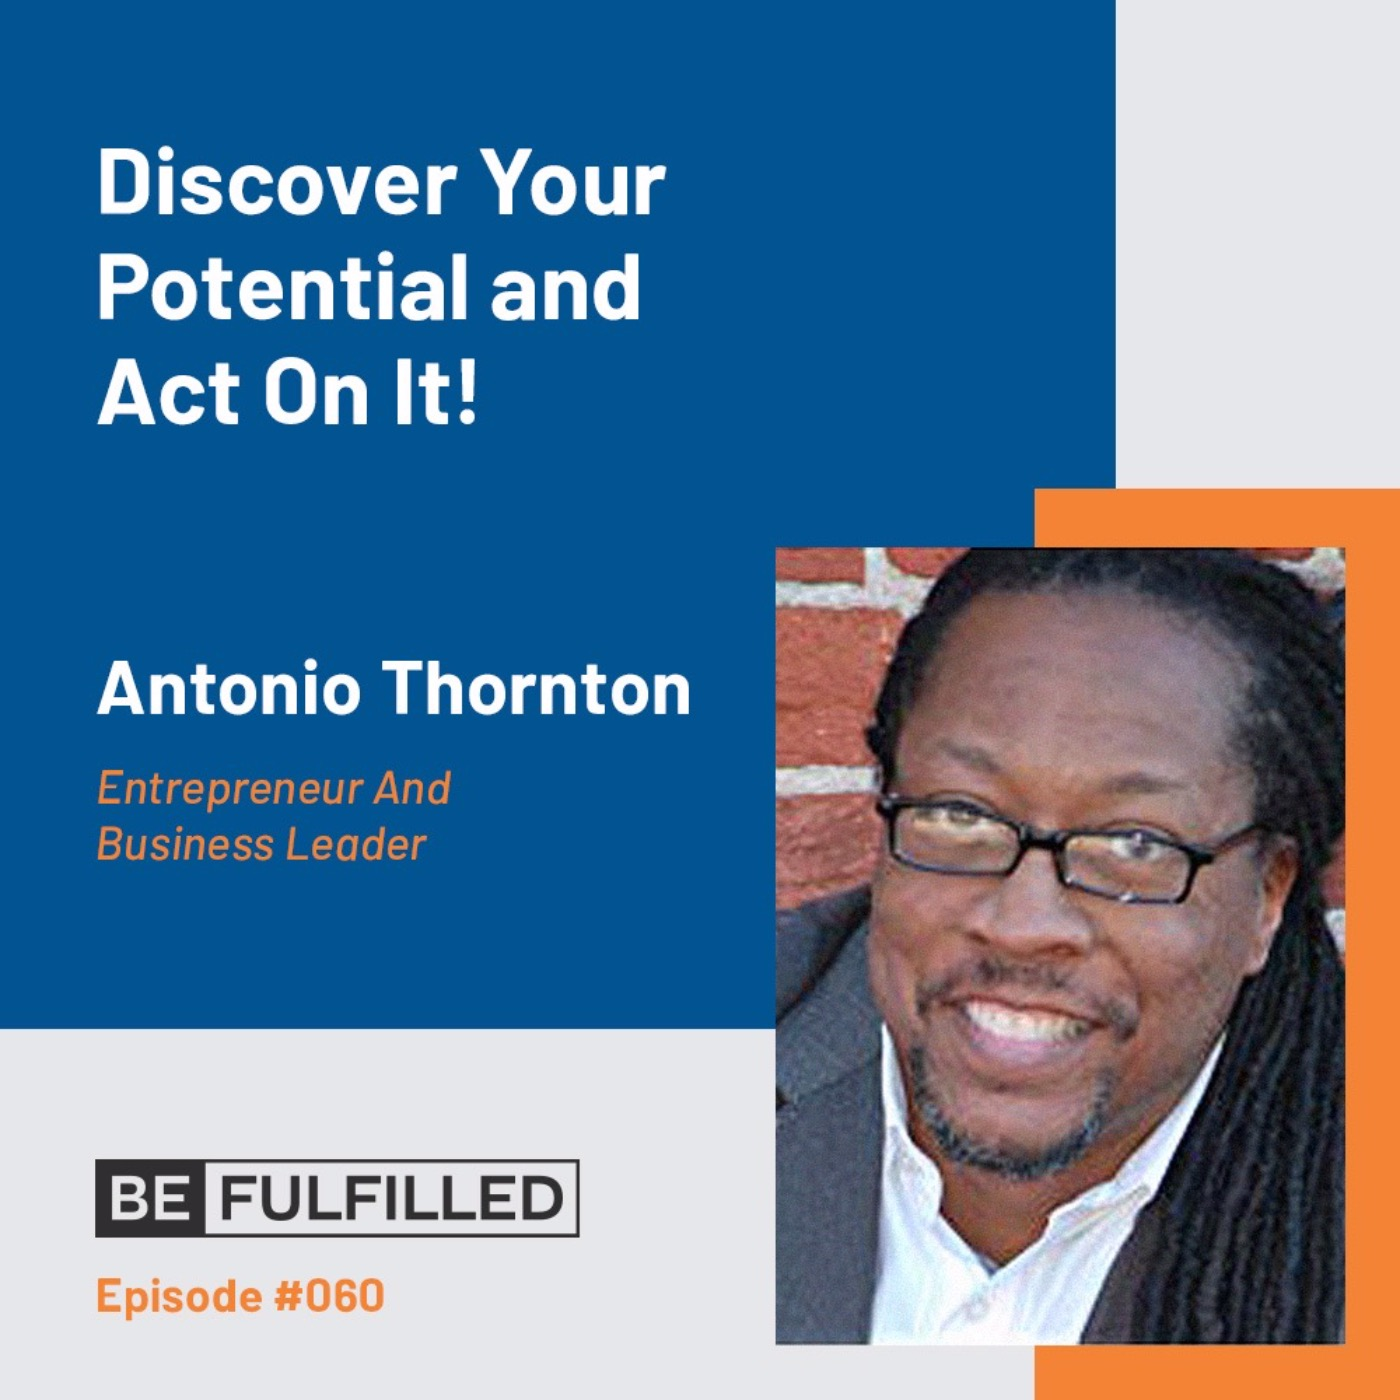 Discover Your Potential and Act On It! - Antonio Thornton